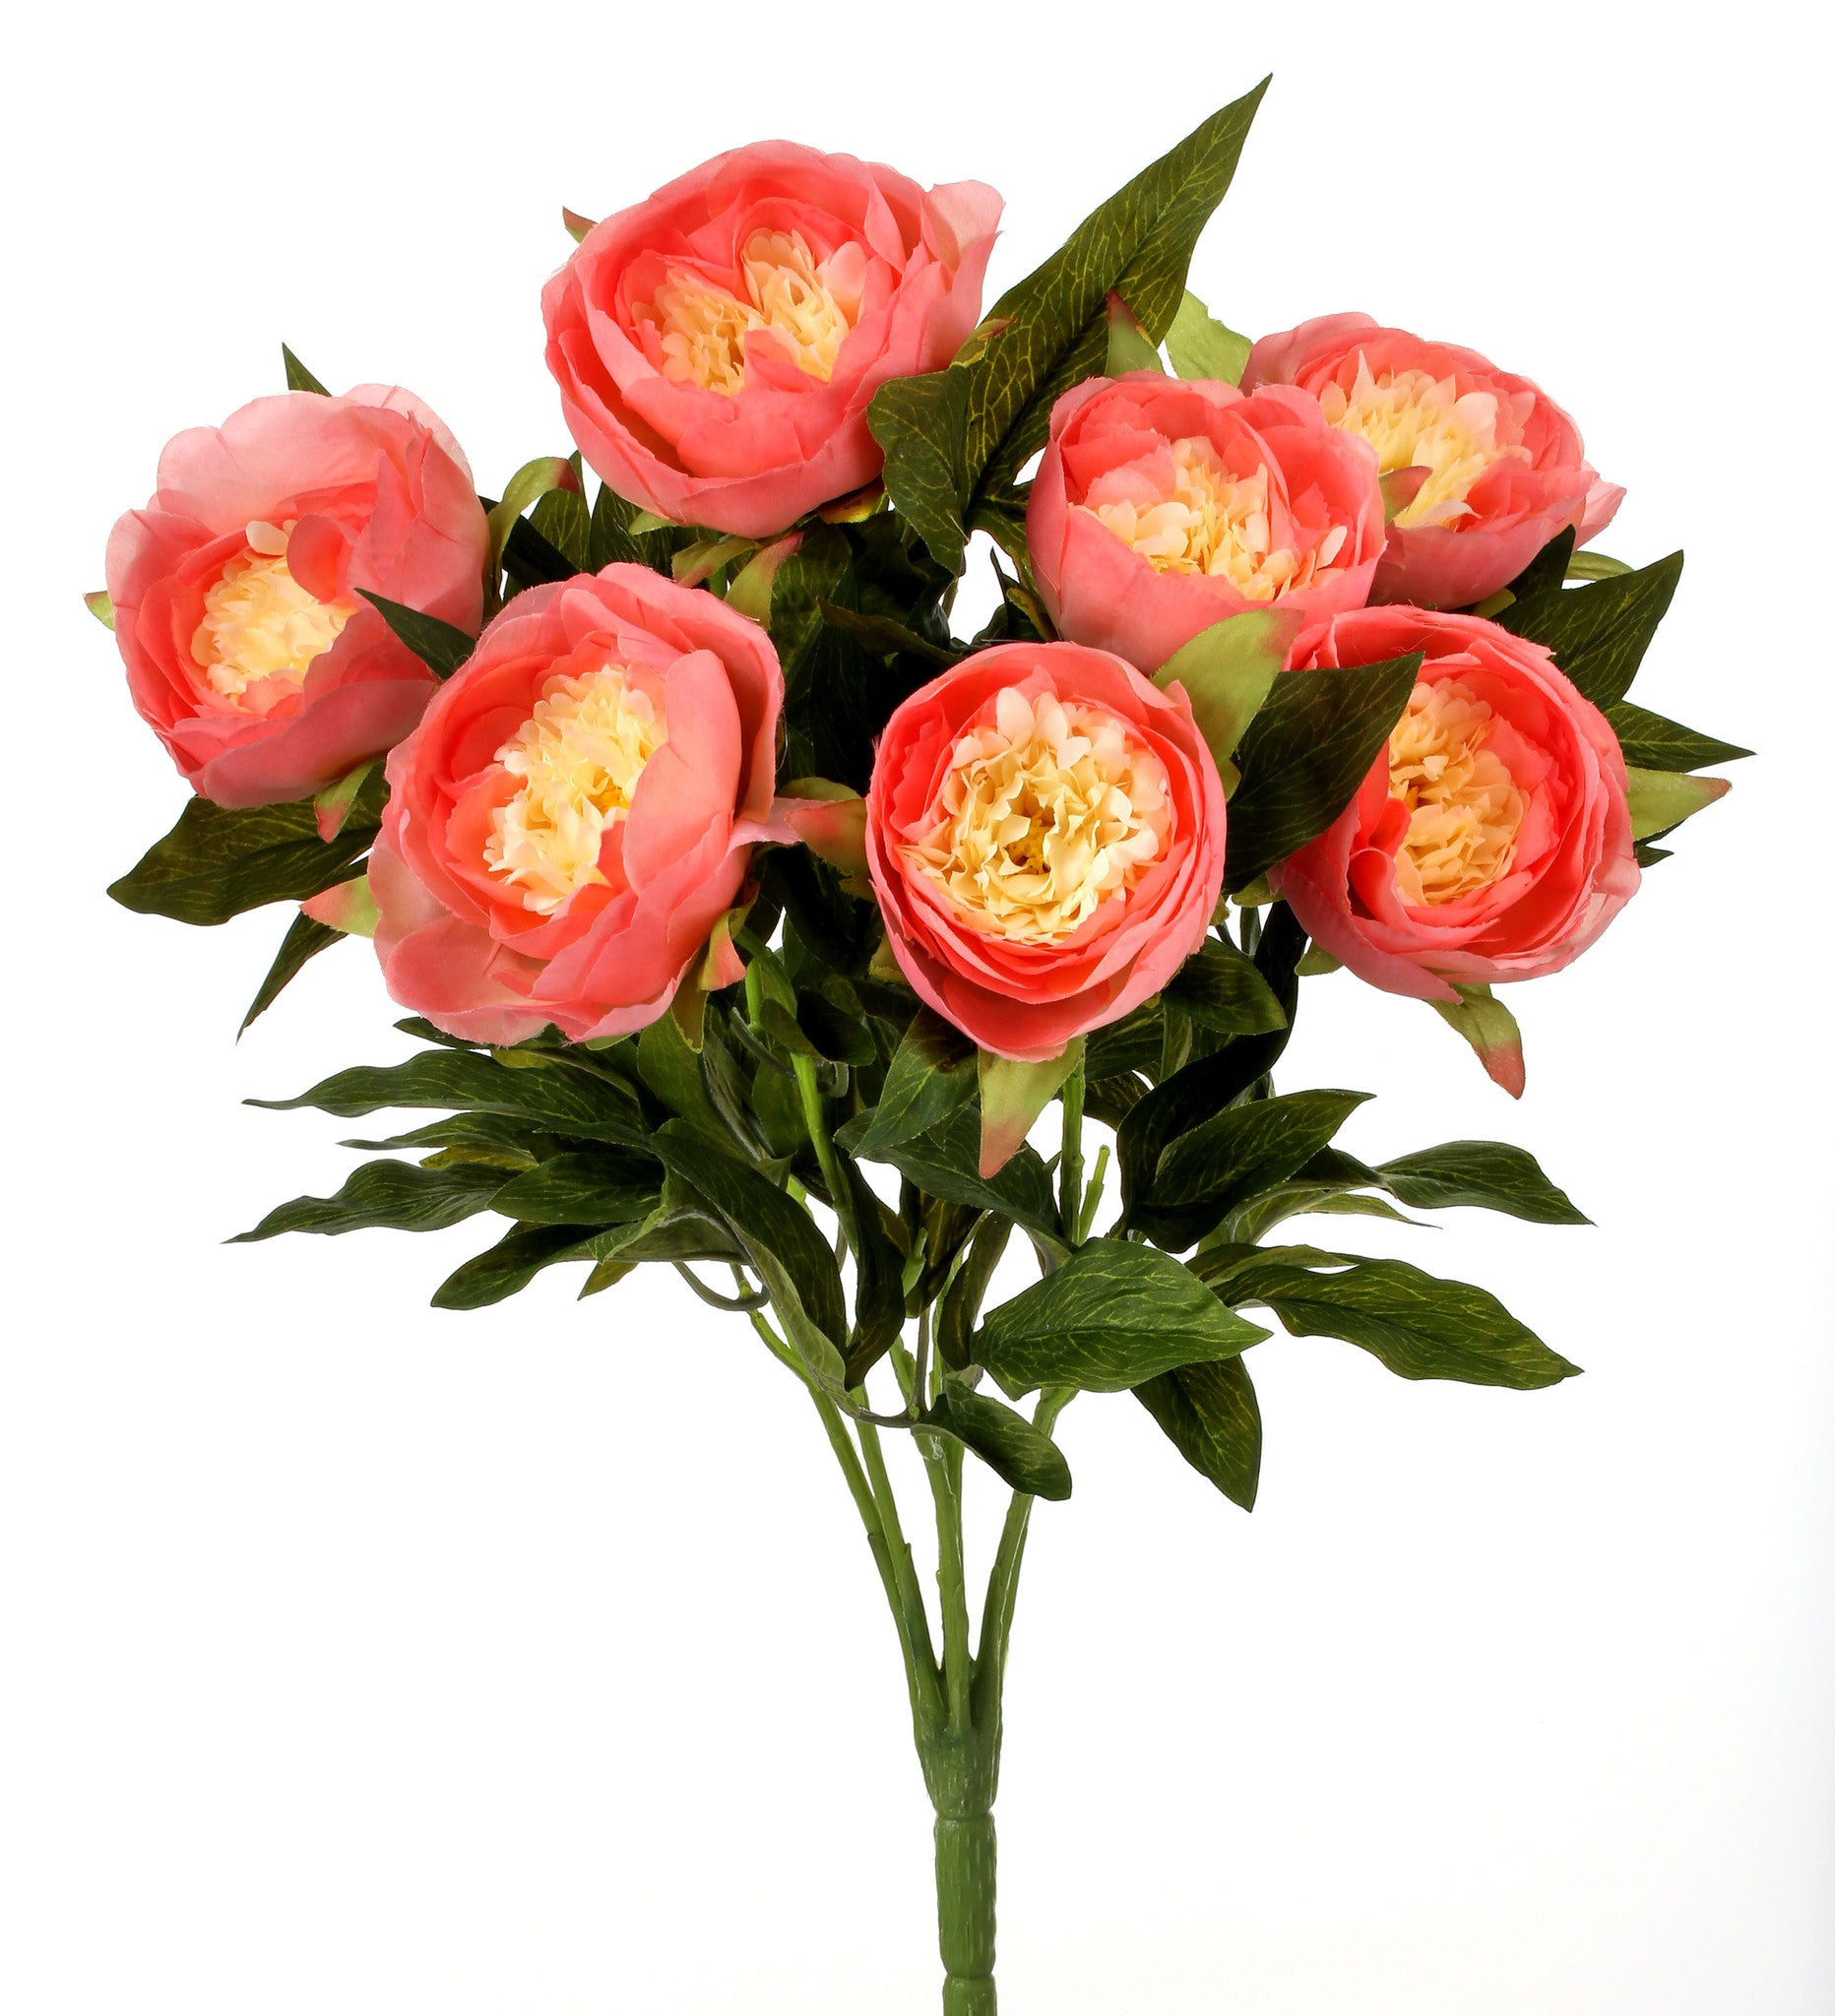 Perfect Peonies in 3 Pretty Styles!